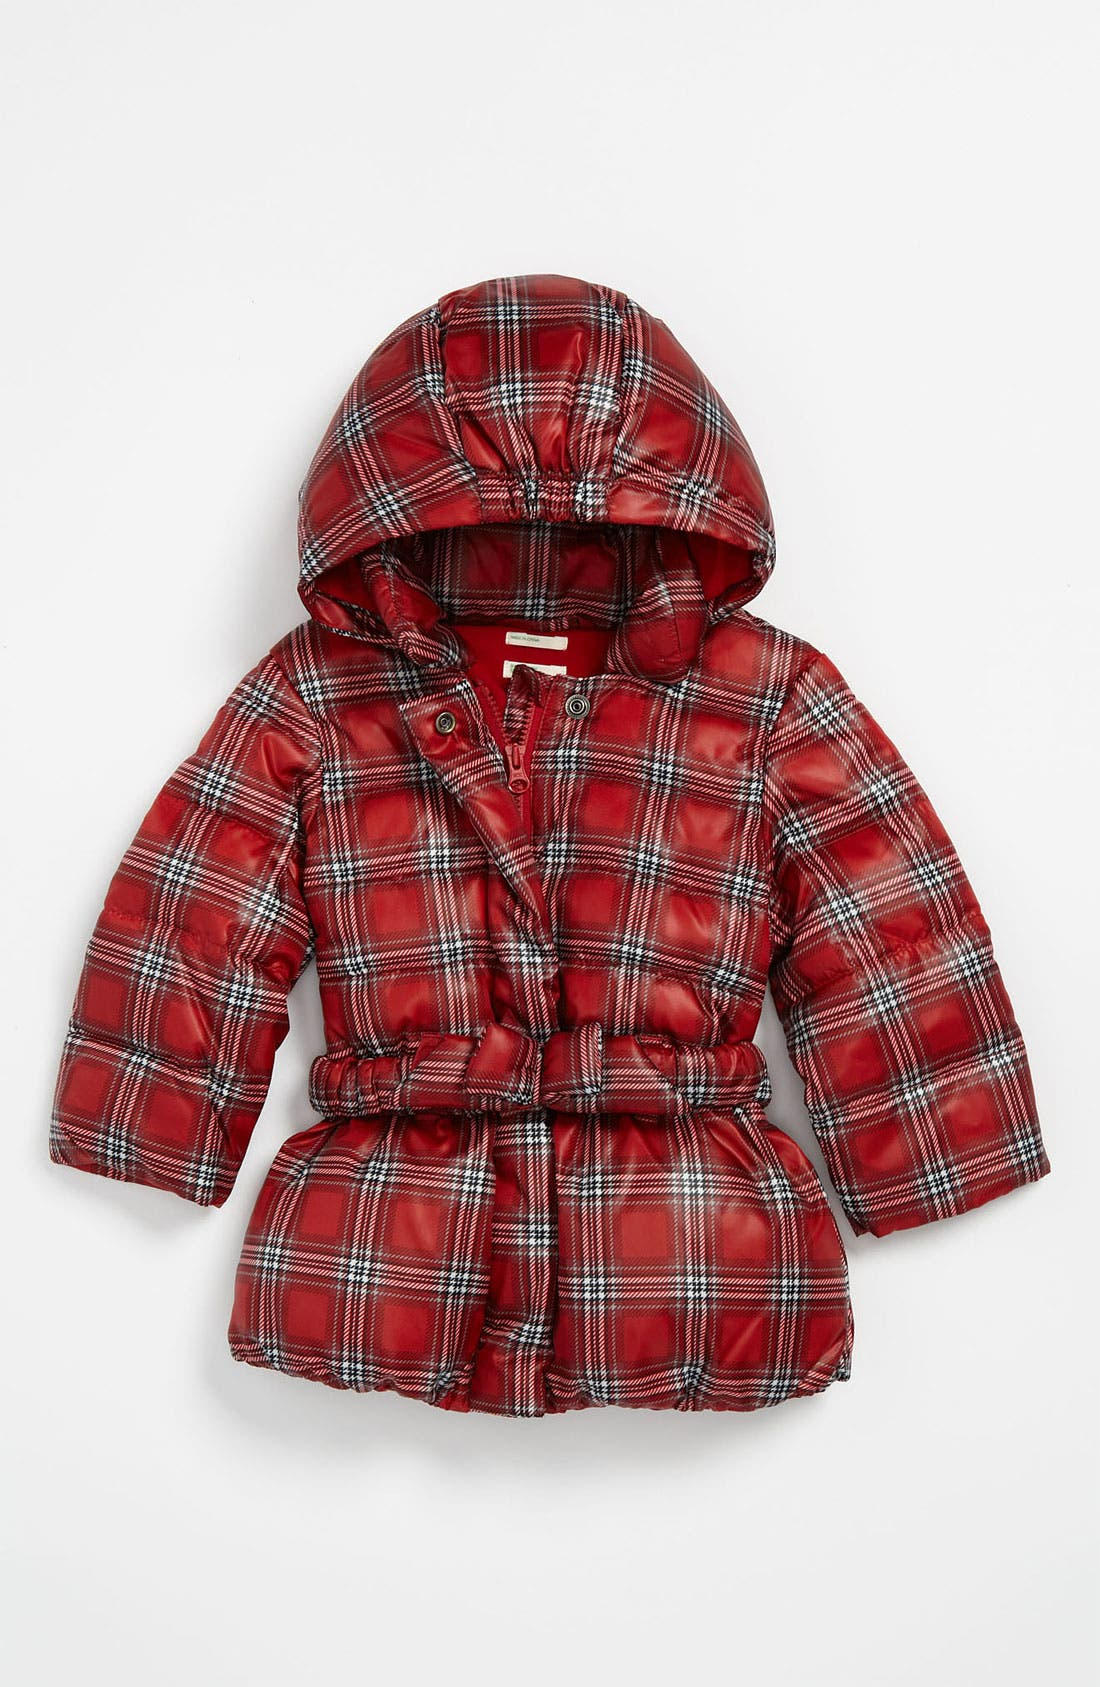 Main Image - United Colors of Benetton Kids Plaid Puffer Coat (Infant)